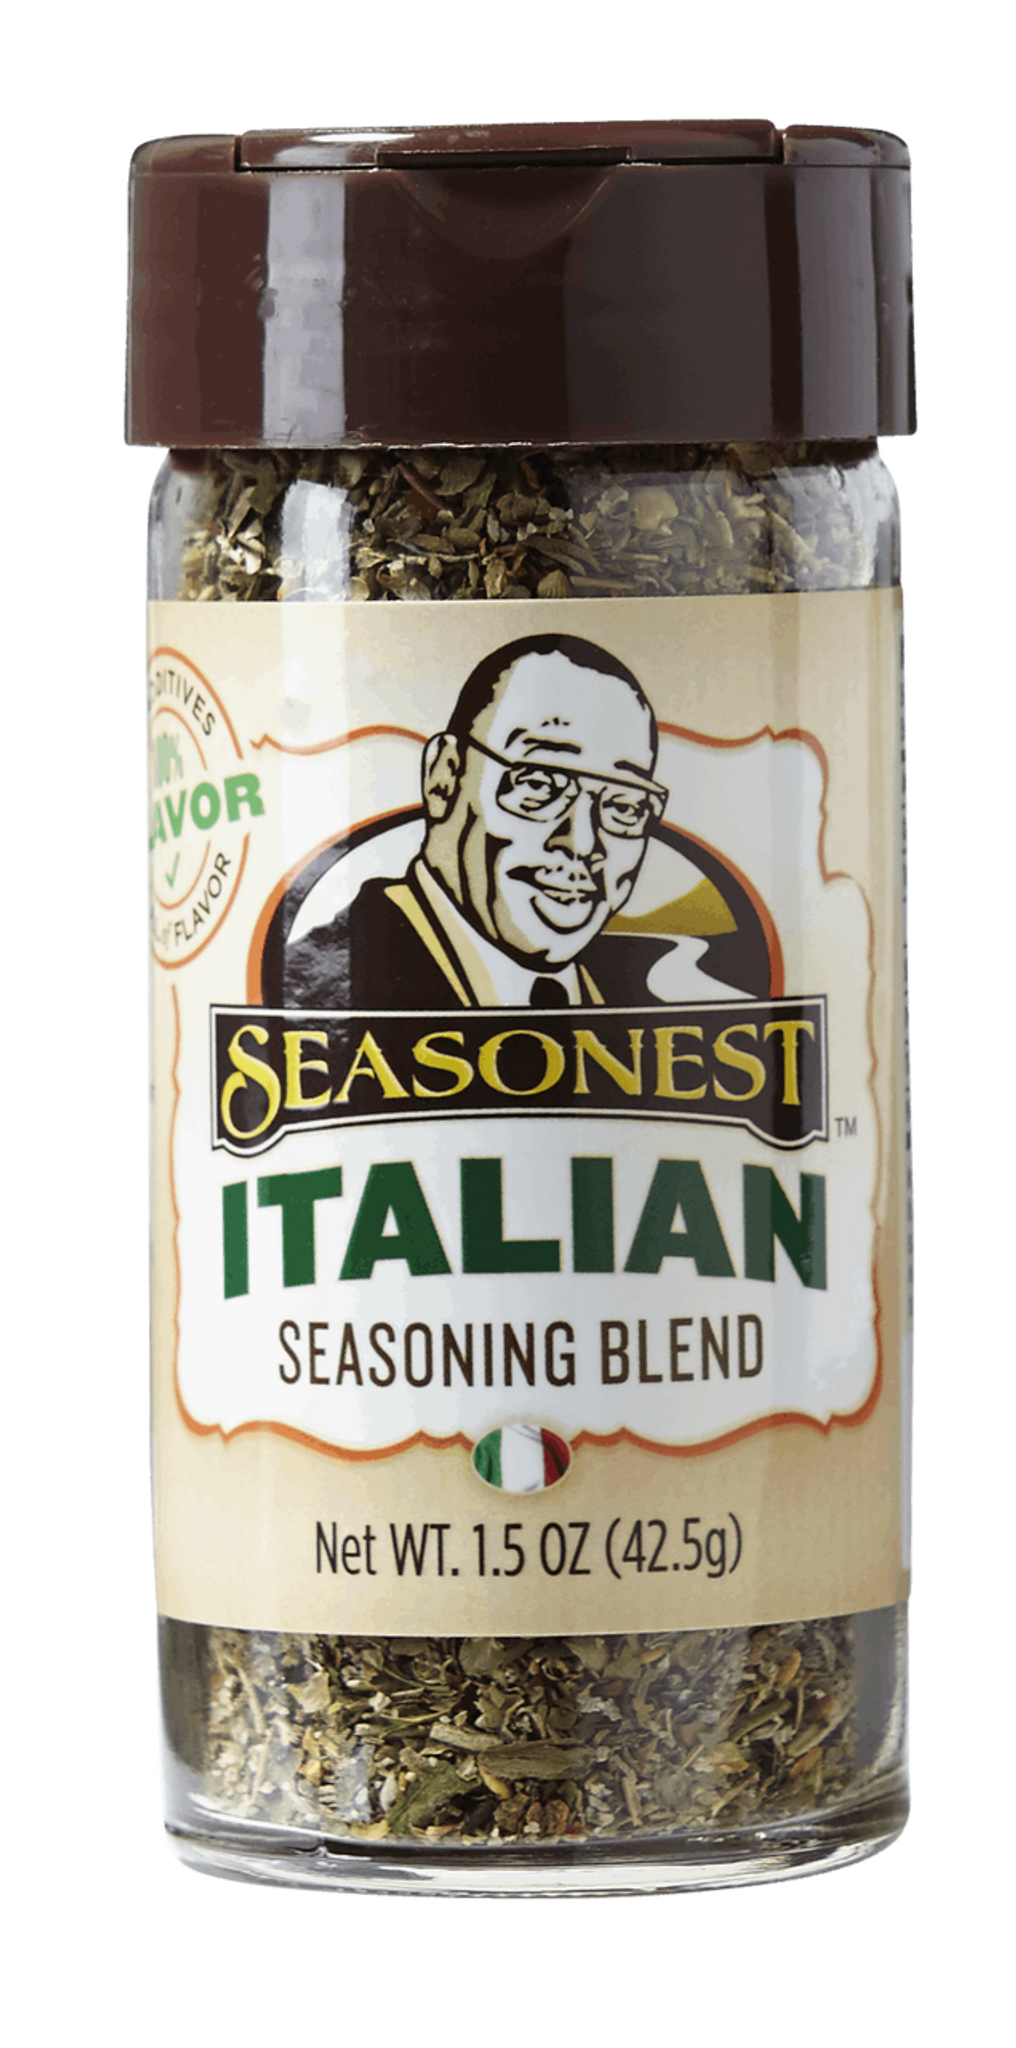 Seasonest Italian Seasoning Blend